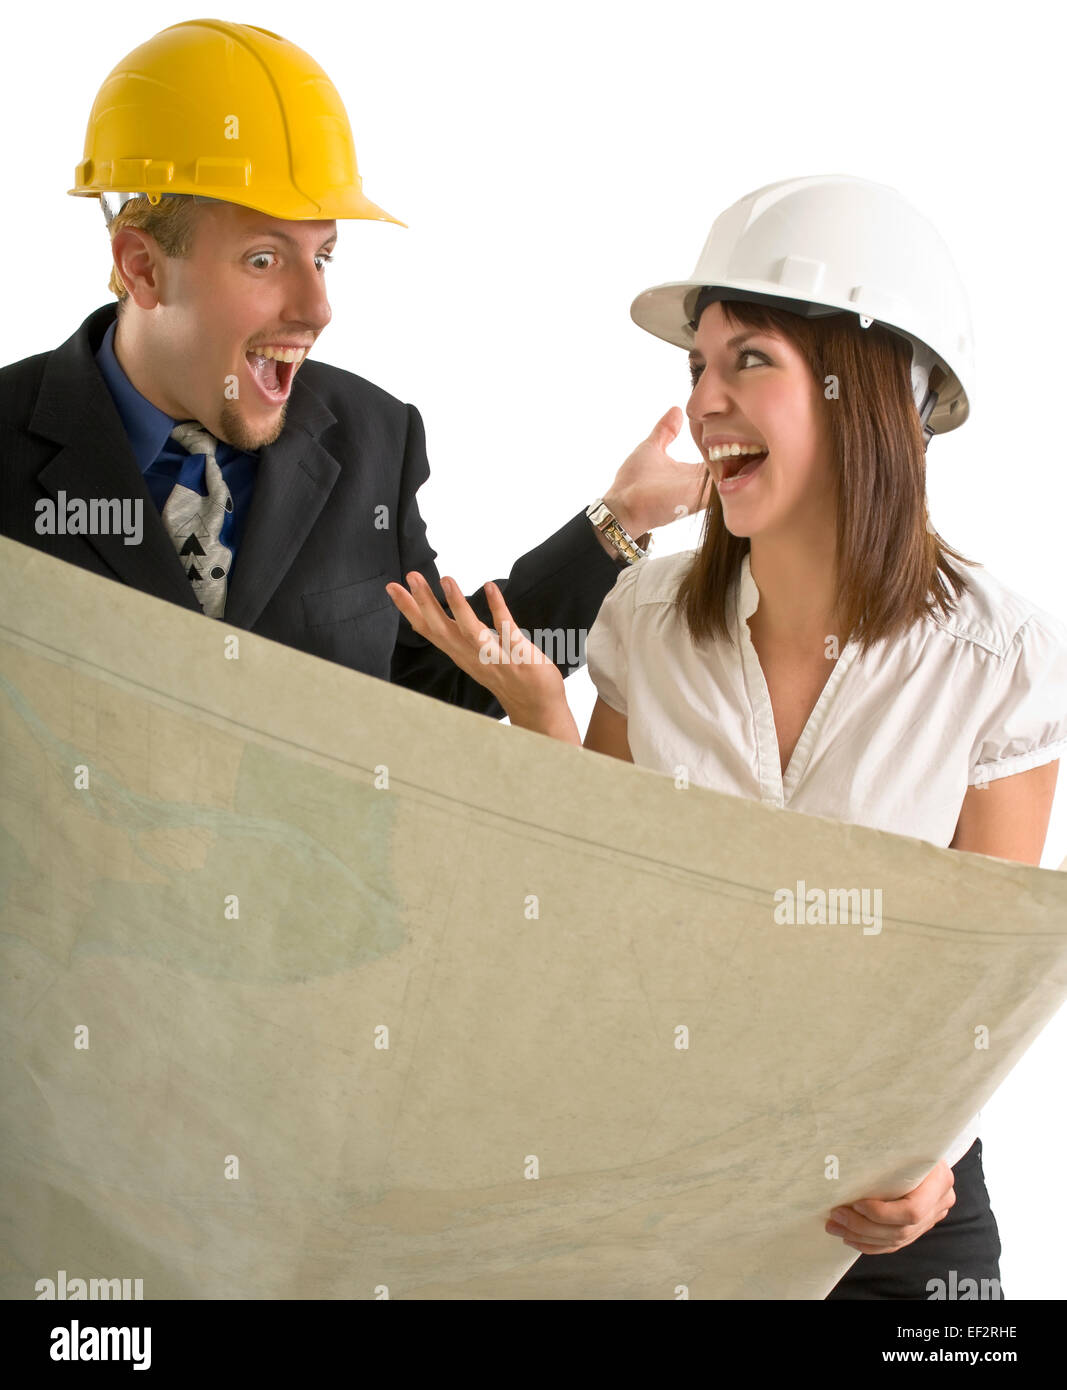 Two excited architects looking at blueprints - Stock Image